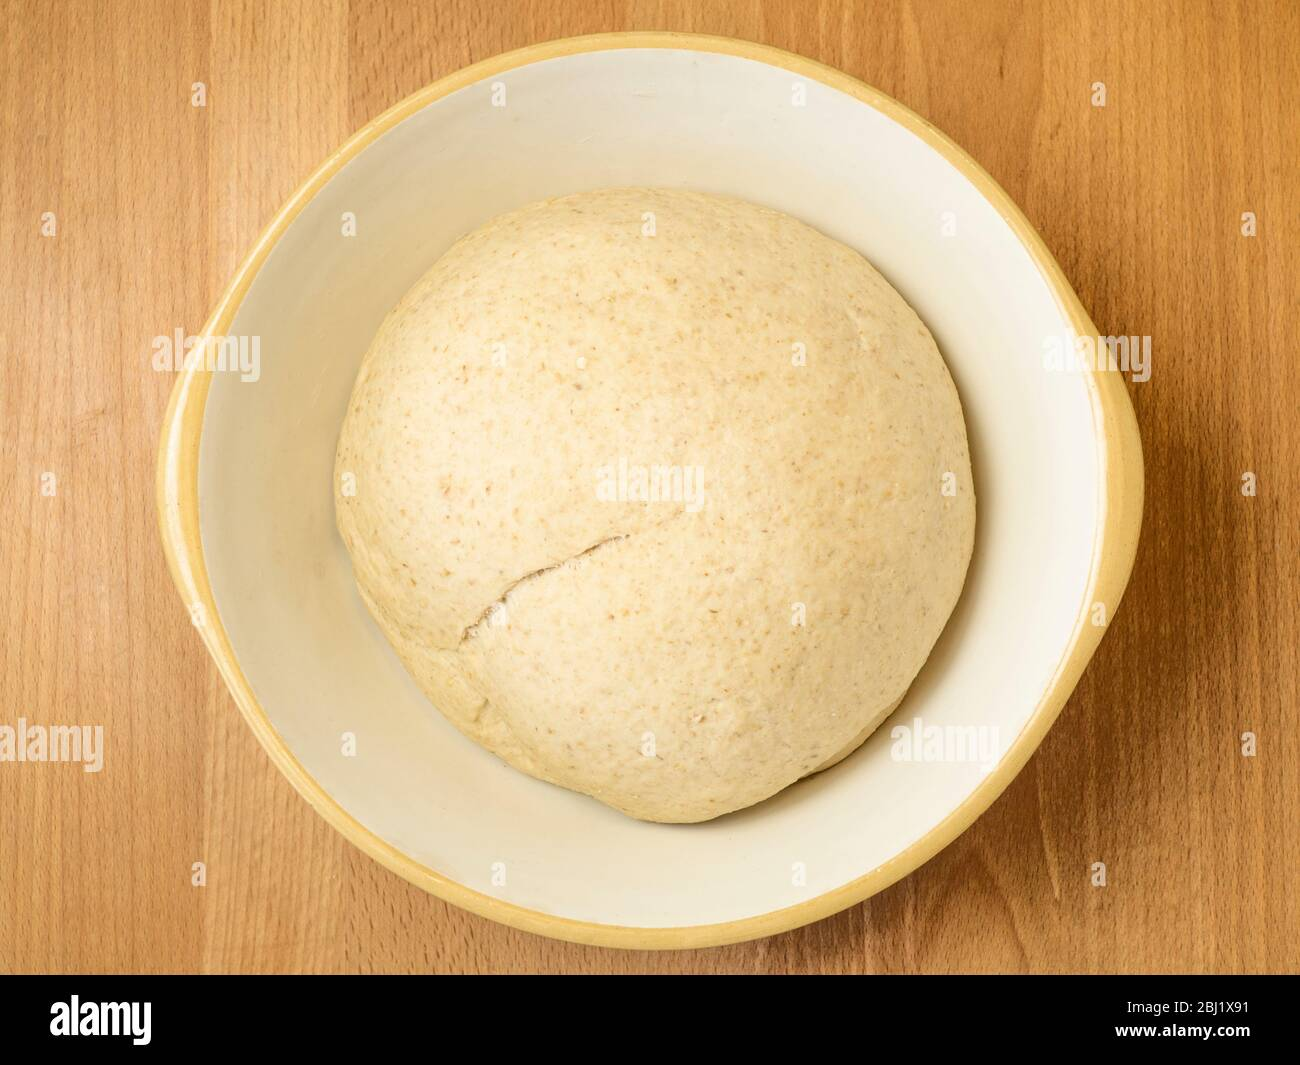 Oat bread dough doubled in size after the first prove before knocking back in a mixing bowl on a wooden kitchen table Stock Photo